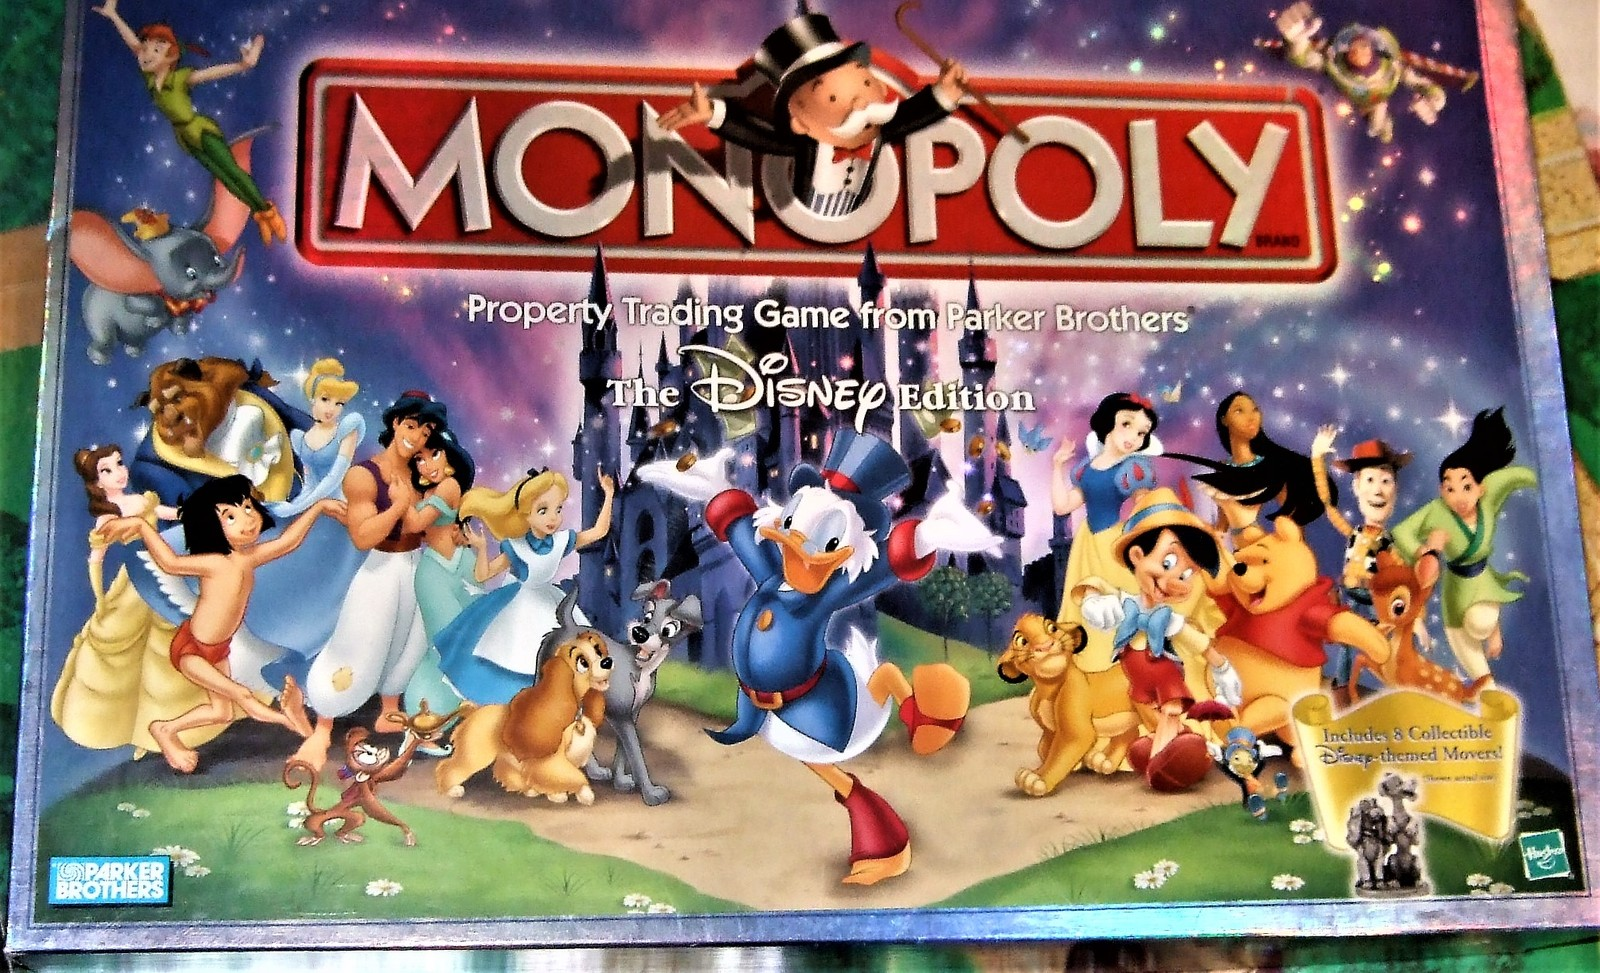 Monopoly -The Disney Edition - Property Trading Game From Parker Brothers -2001 image 5